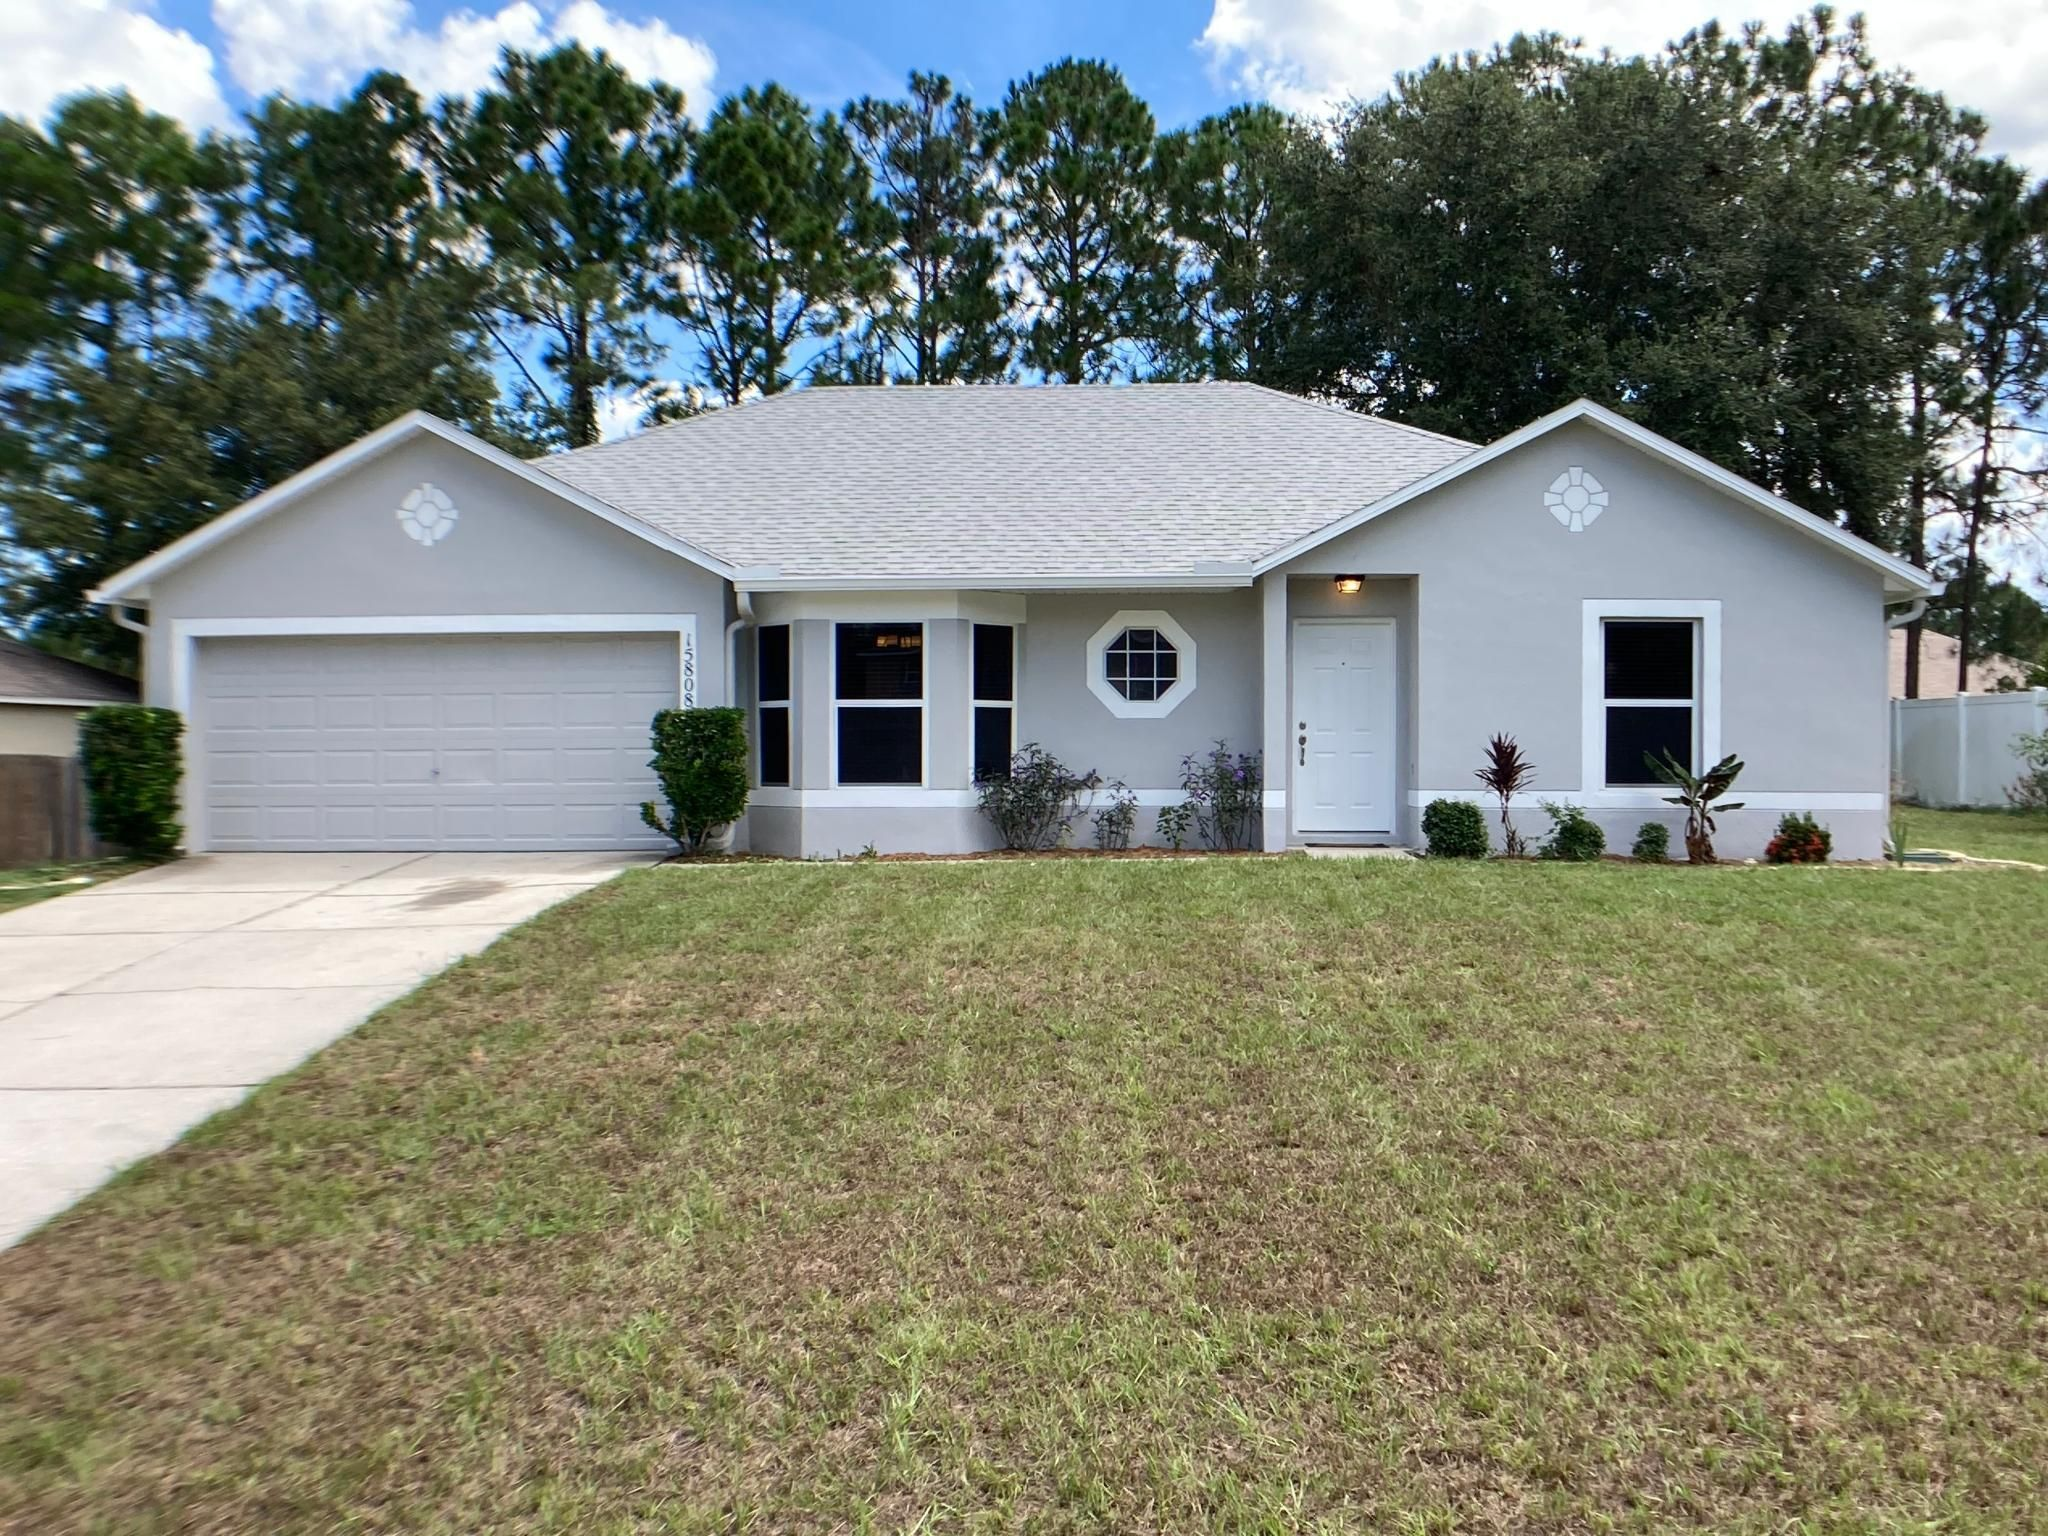 15808 Golden Club St Clermont Fl 34711 3 Bed 2 Bath Single Family Home For Rent 23 Photos Trulia Clermont Renting A House Trulia